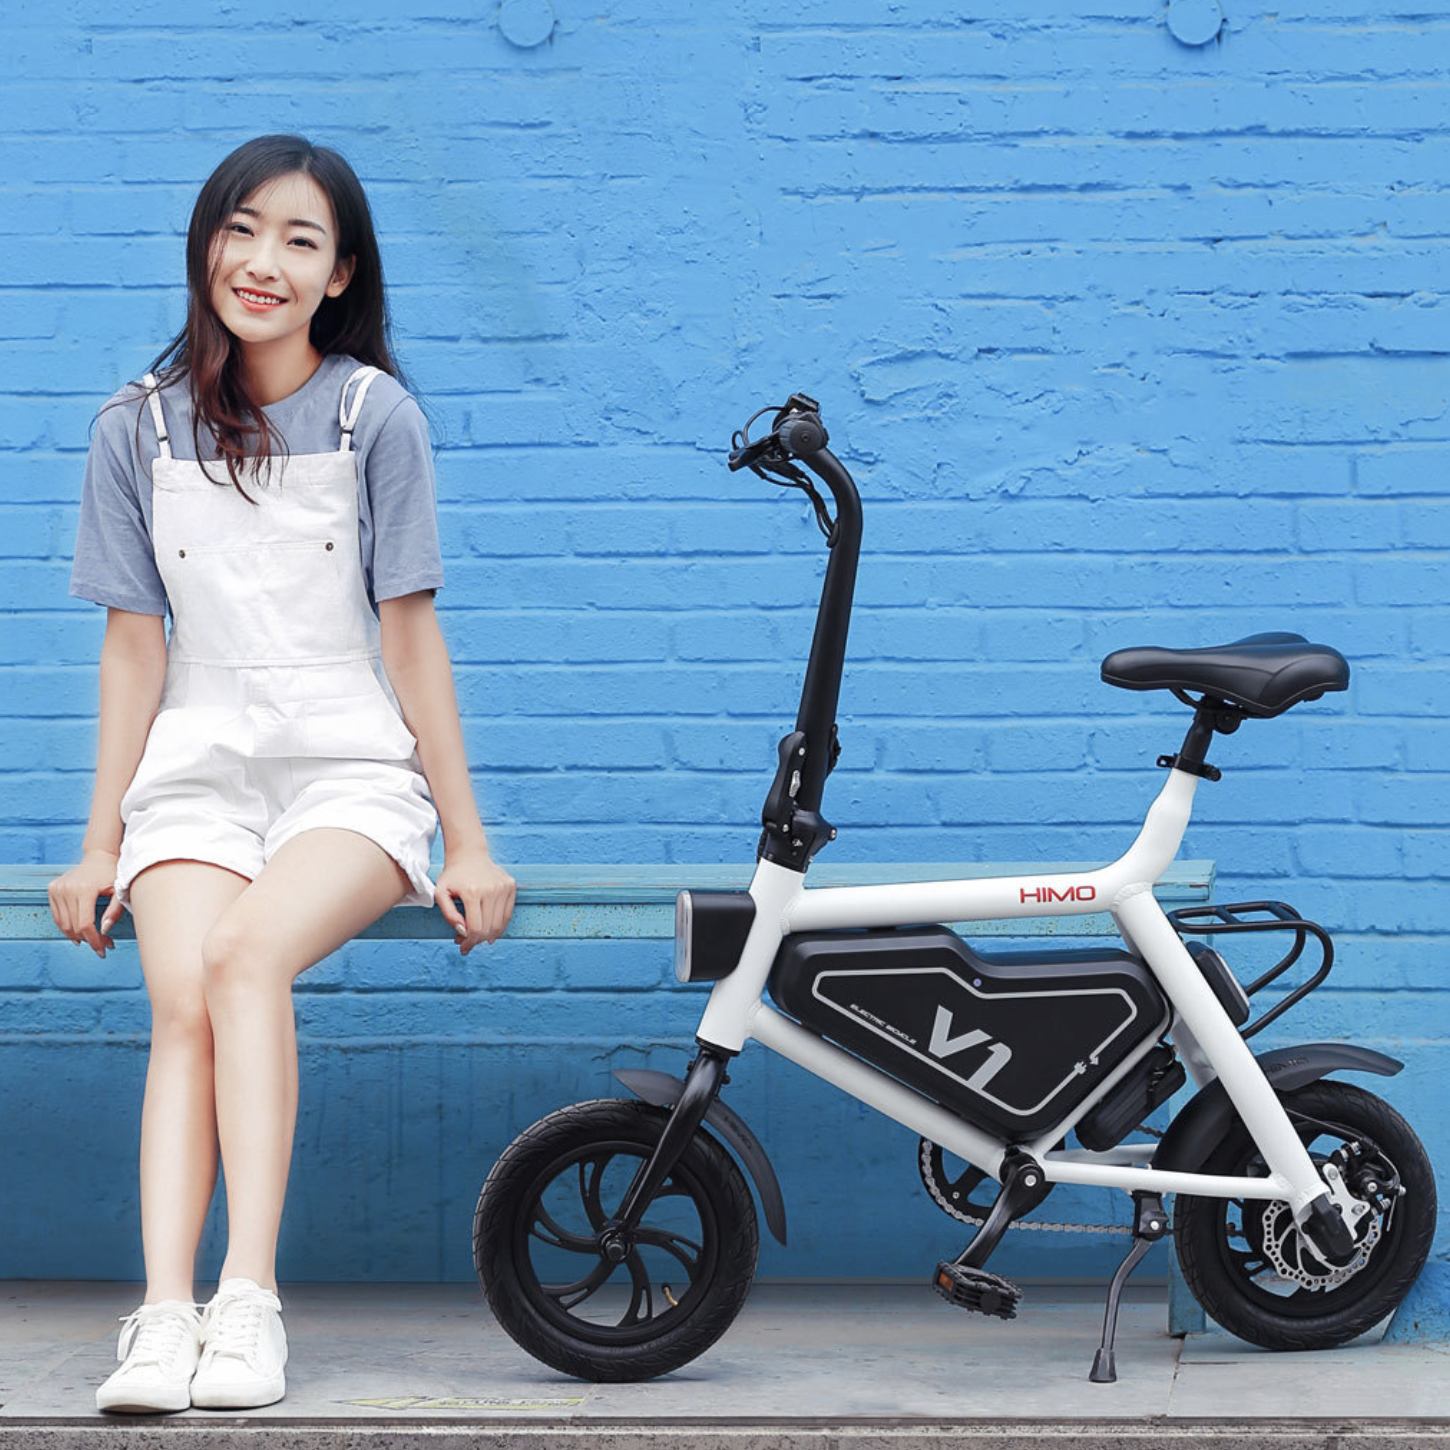 xiaomi himo electric bicycle. Black Bedroom Furniture Sets. Home Design Ideas